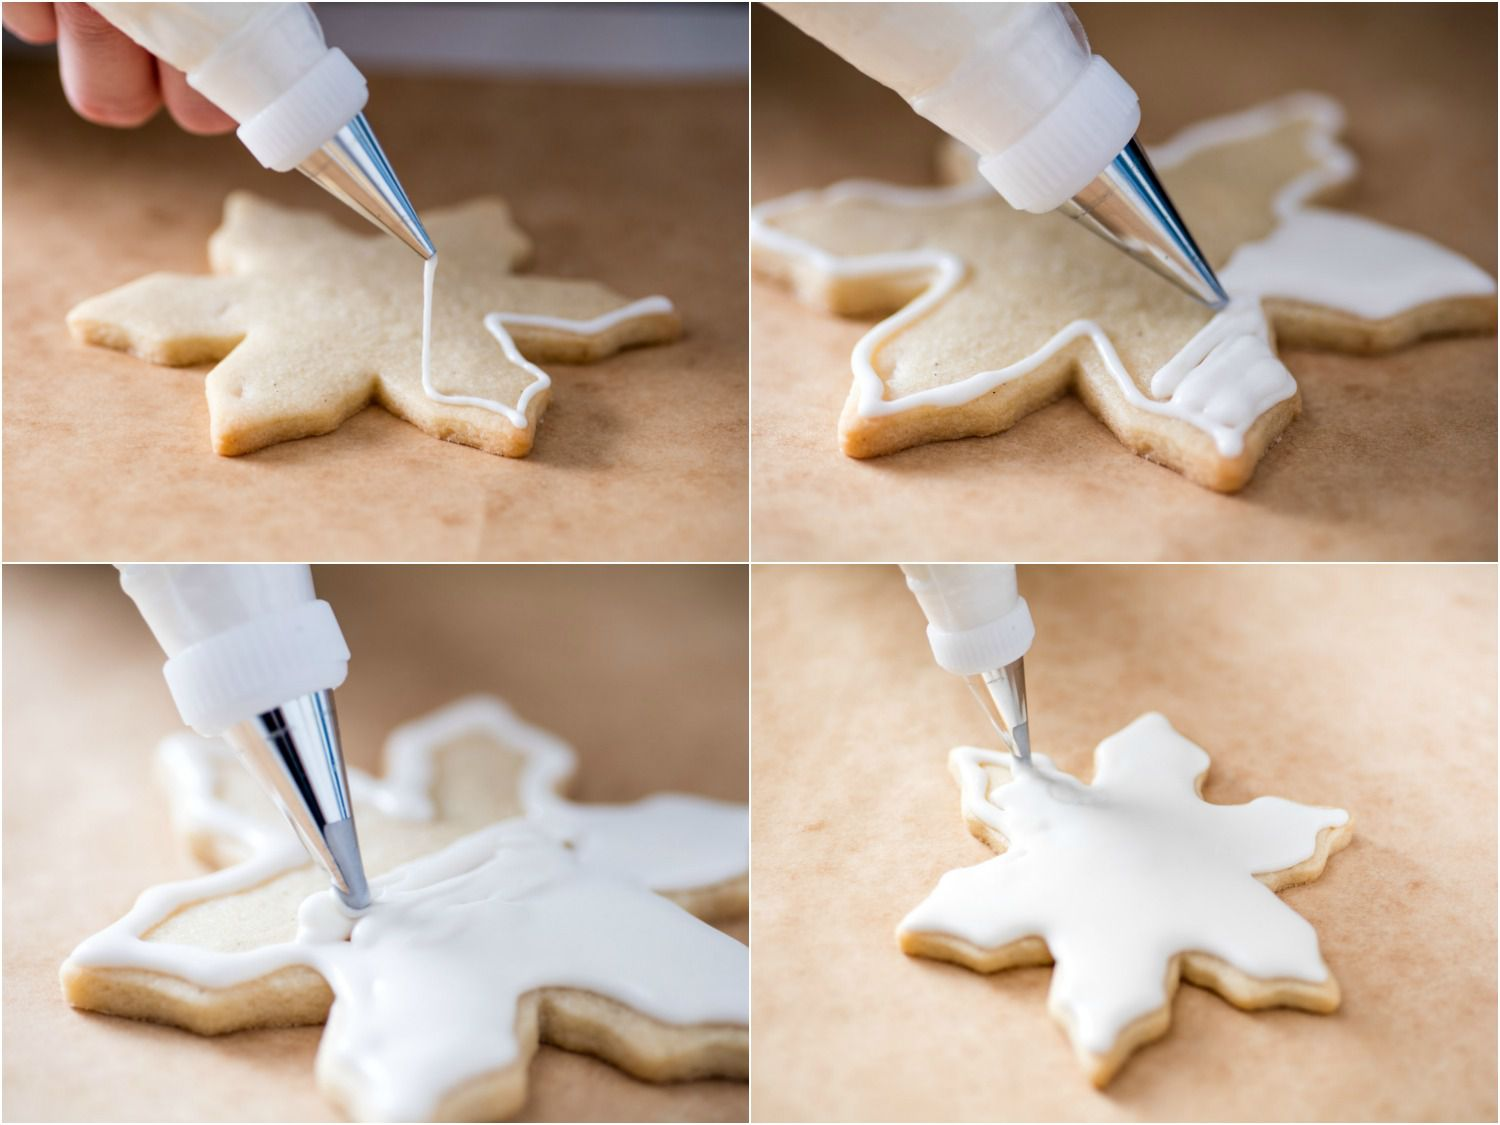 20161207-holiday-cookie-decorating-icing-sugar-cookies-vicky-wasik-flooding-collage.jpg